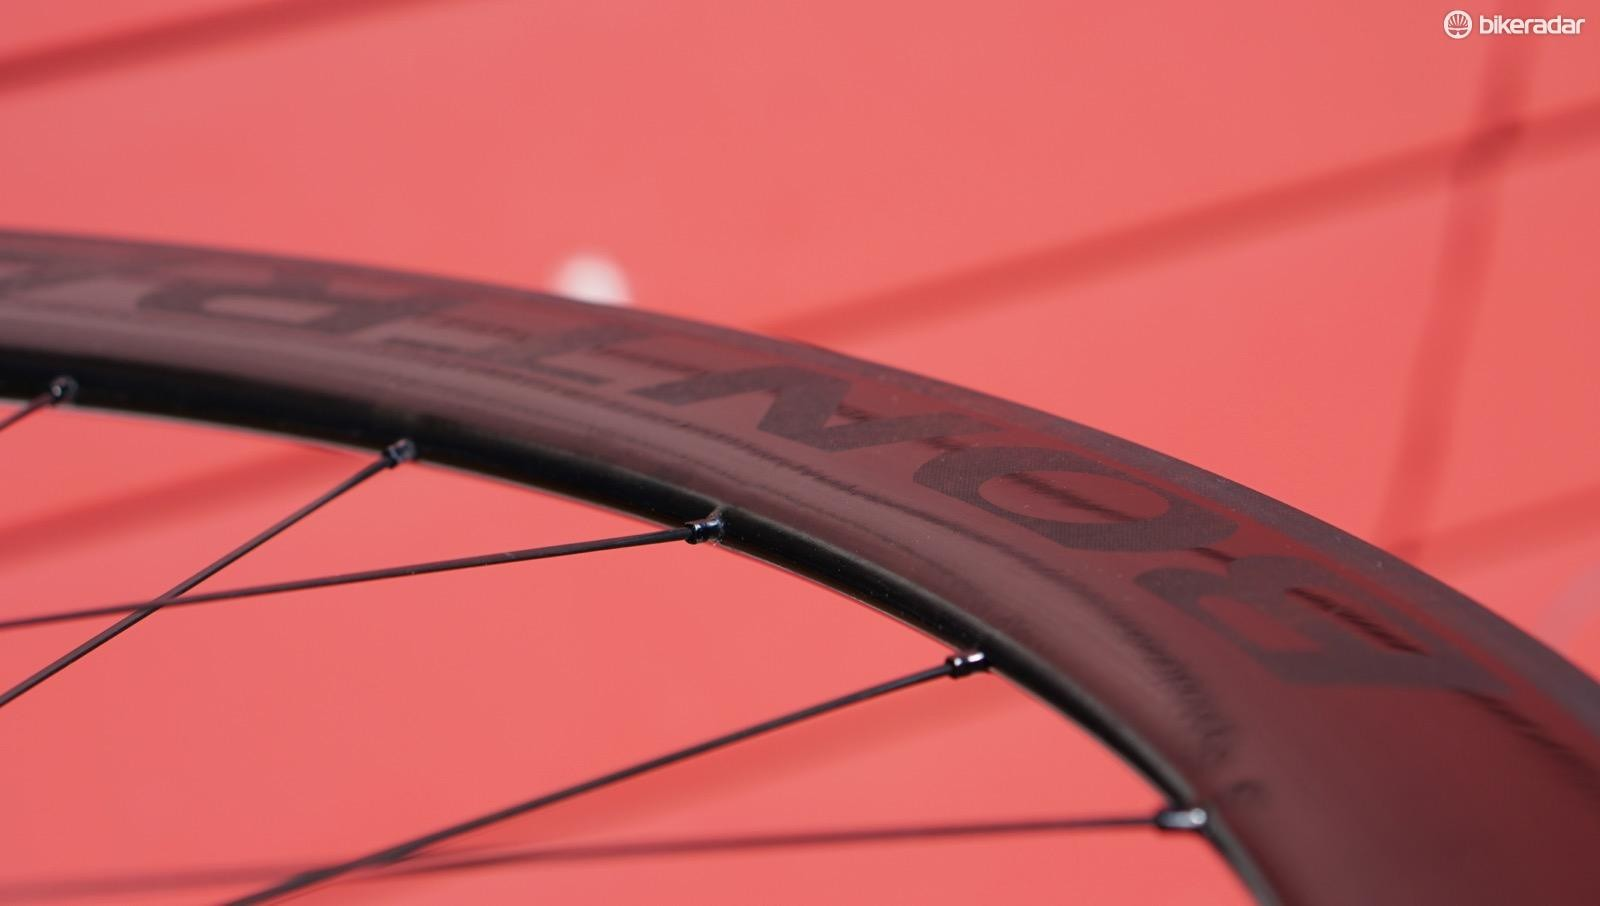 The 4 and the 6 rims have more of a pointed spoke bed than some other relatively stable aero wheels